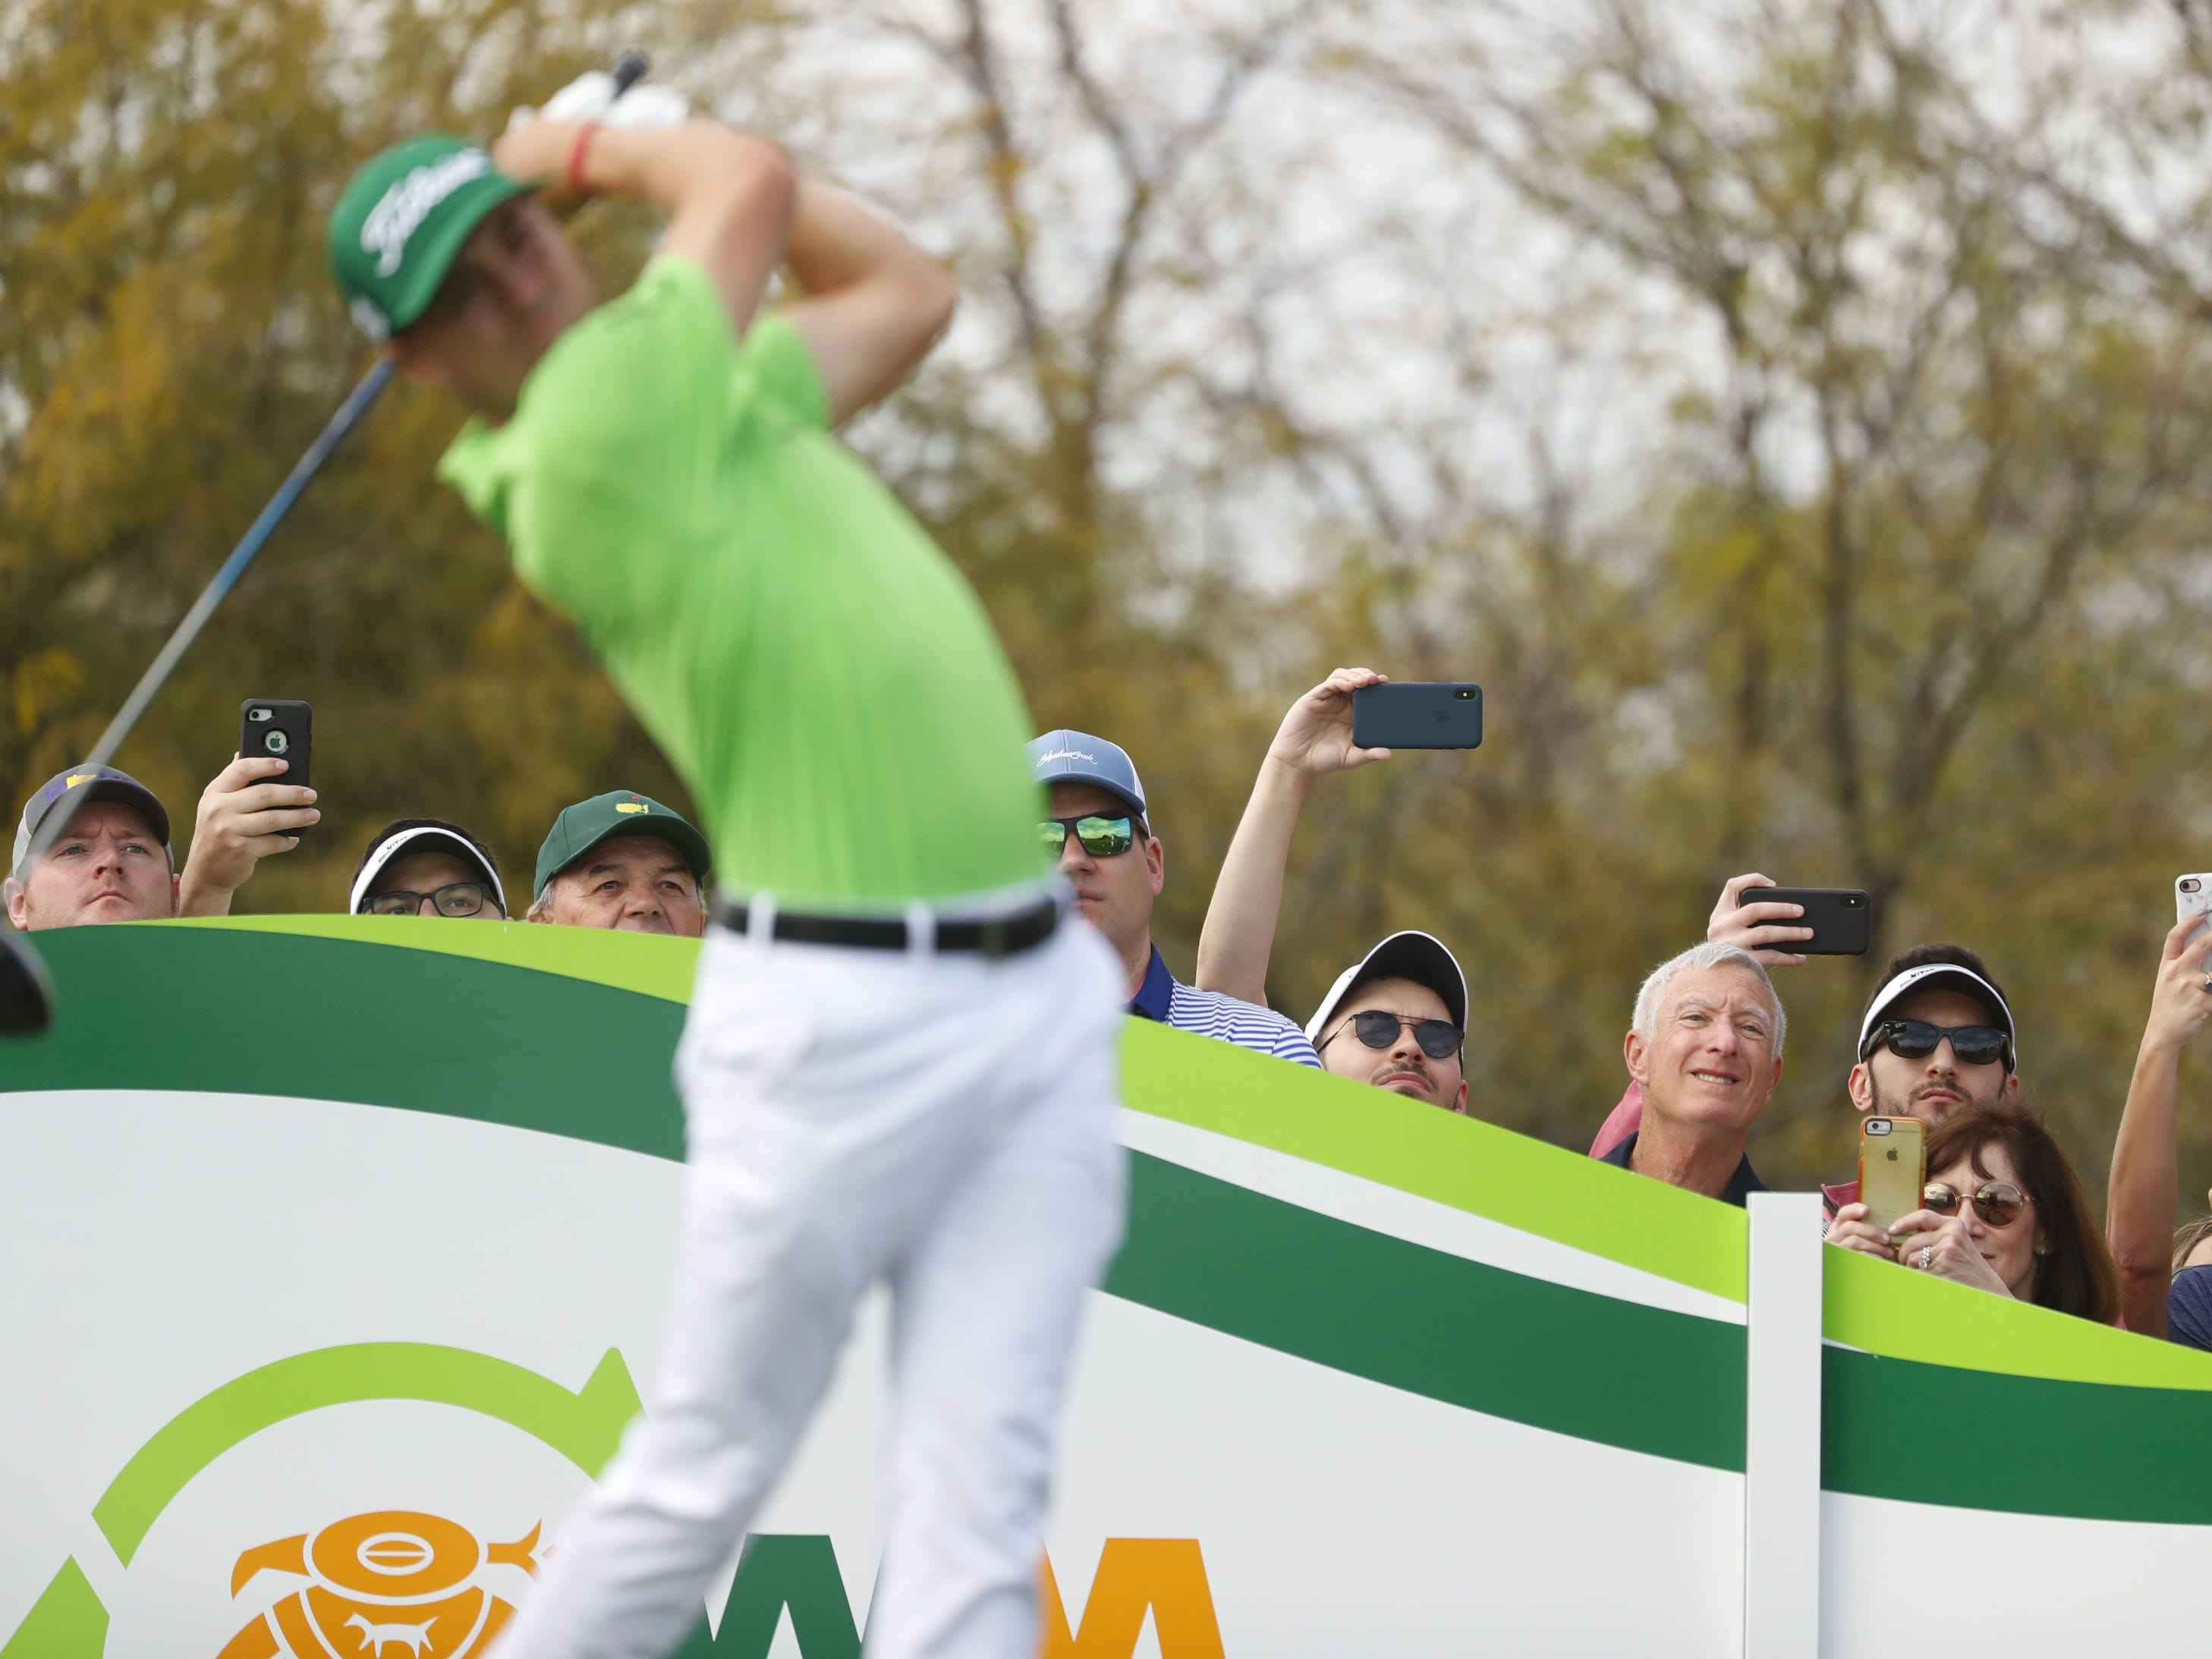 Fans watch Justin Thomas tee off during the third round of the Waste Management Phoenix Open at TPC Scottsdale in Scottsdale, Ariz. on February 2, 2019.